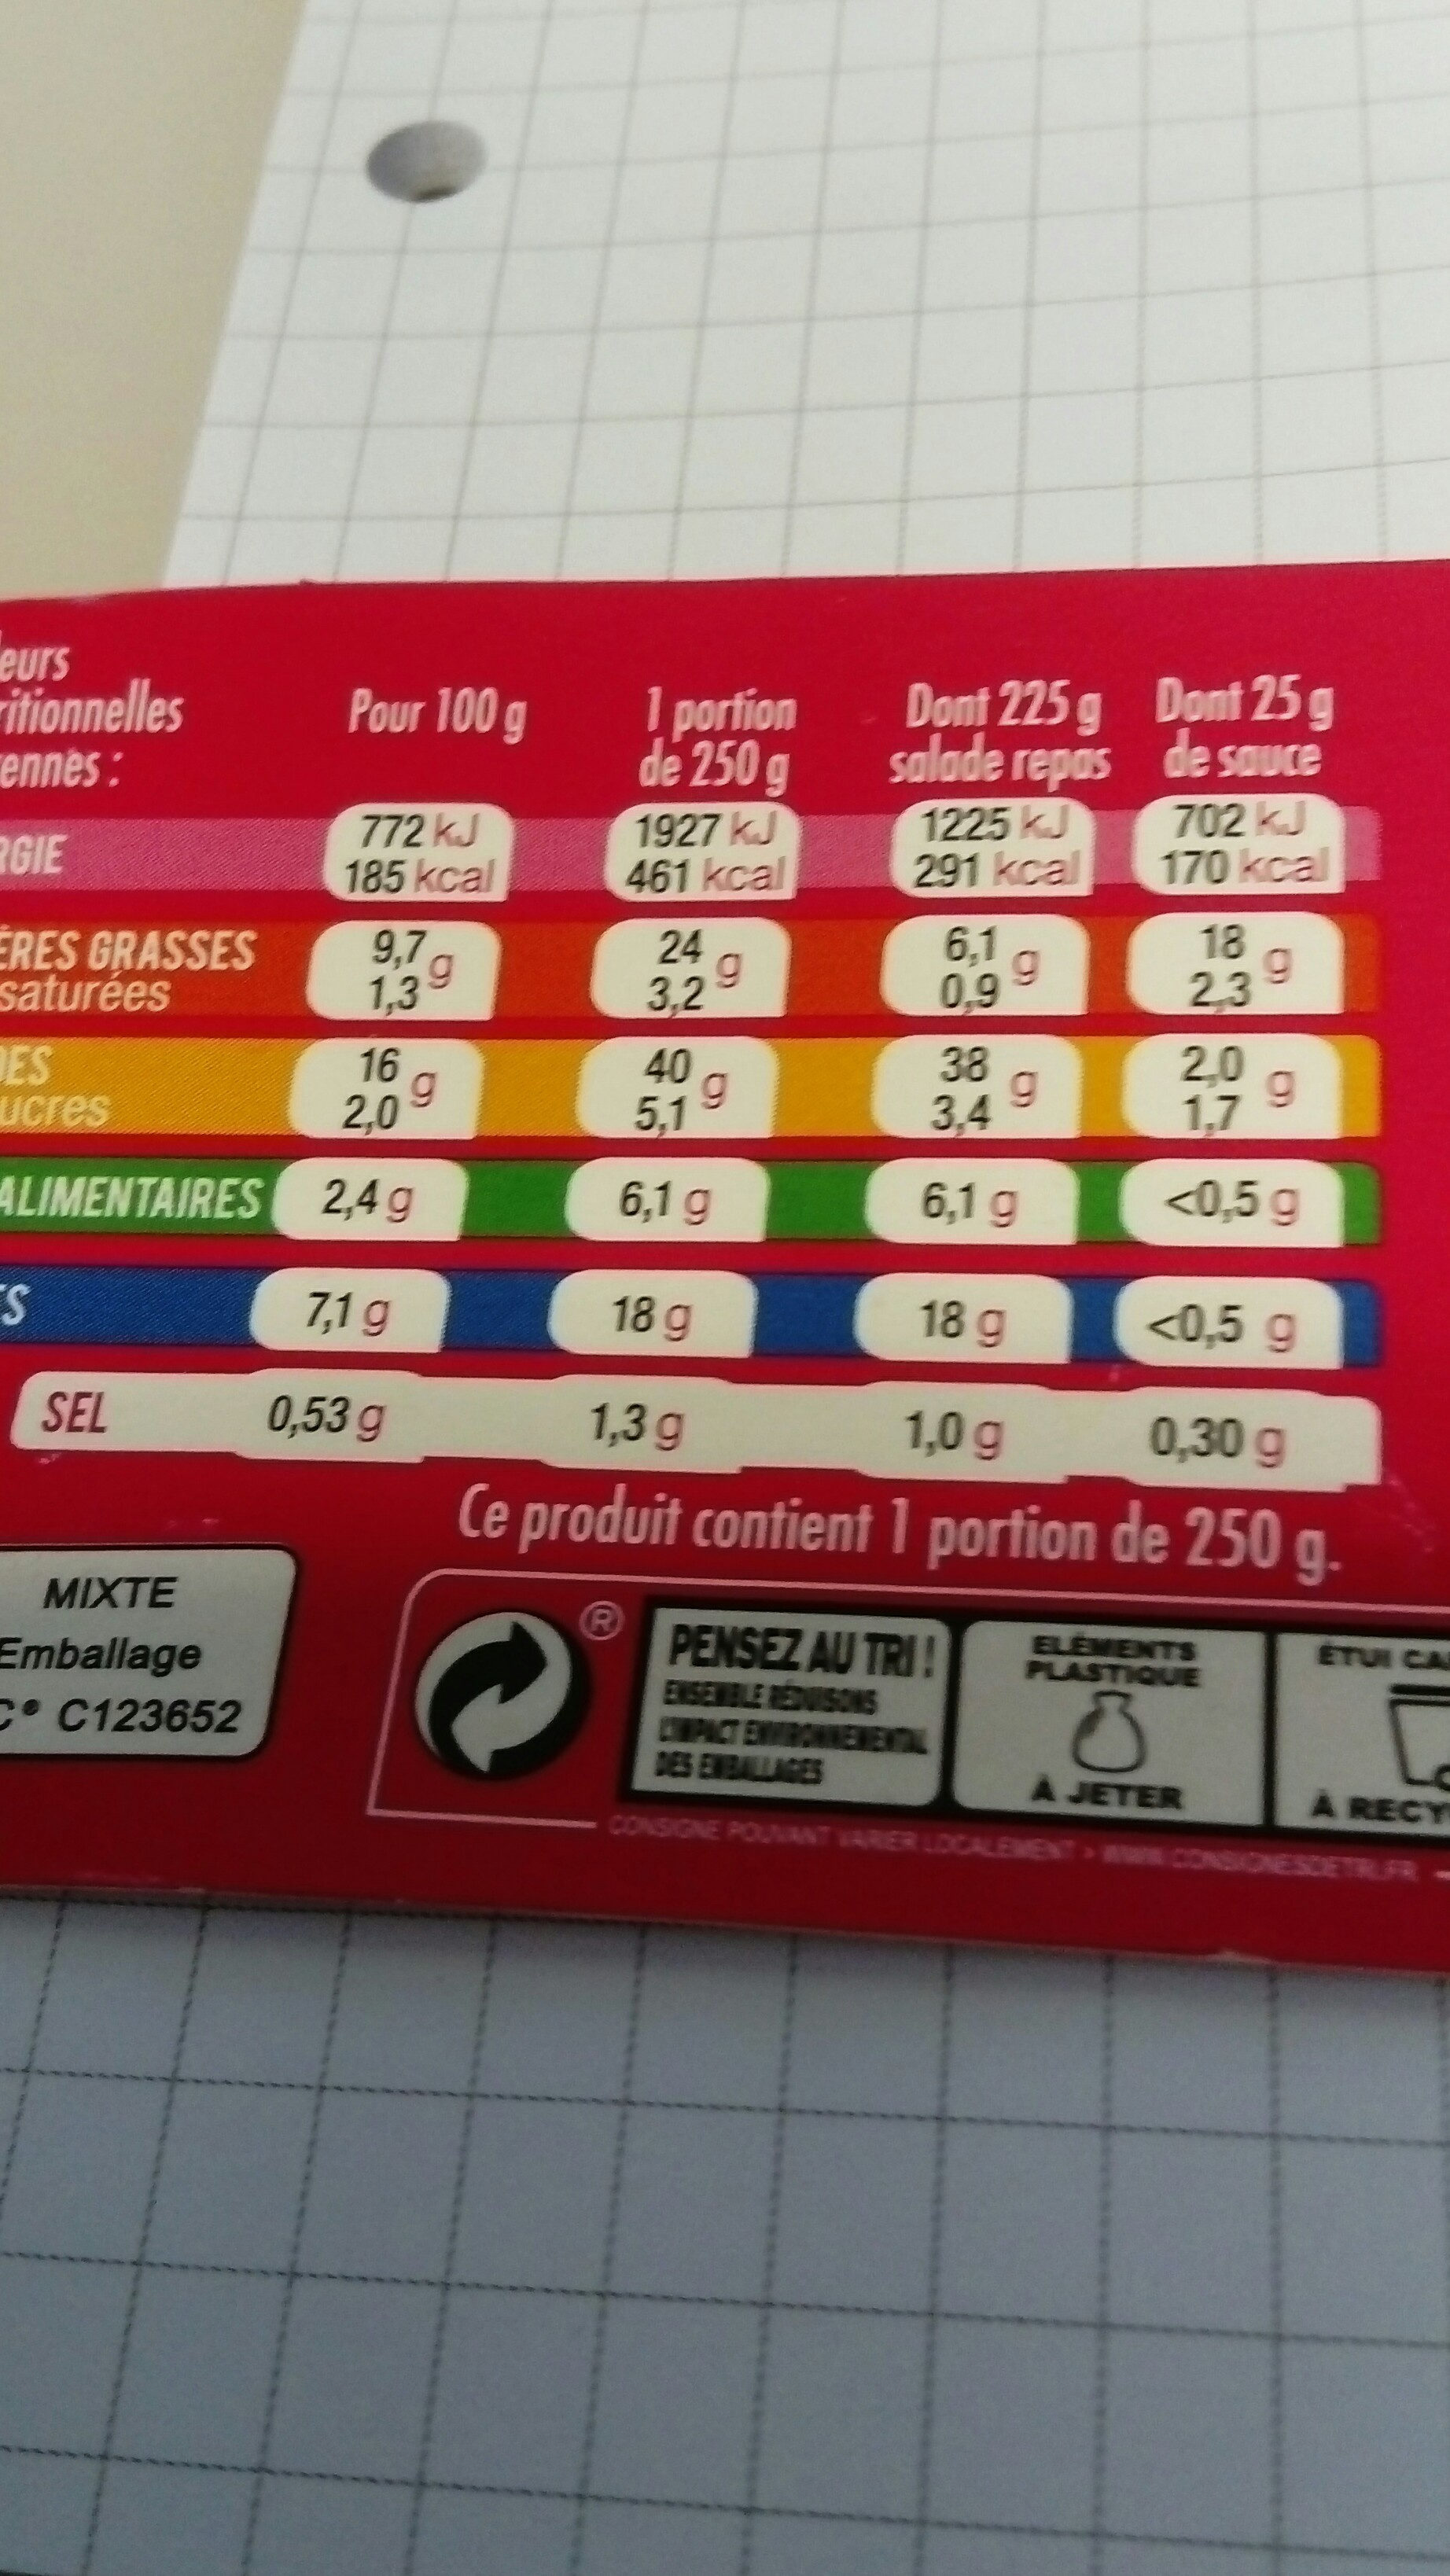 Salade & Penne Thon, 250g - Nutrition facts